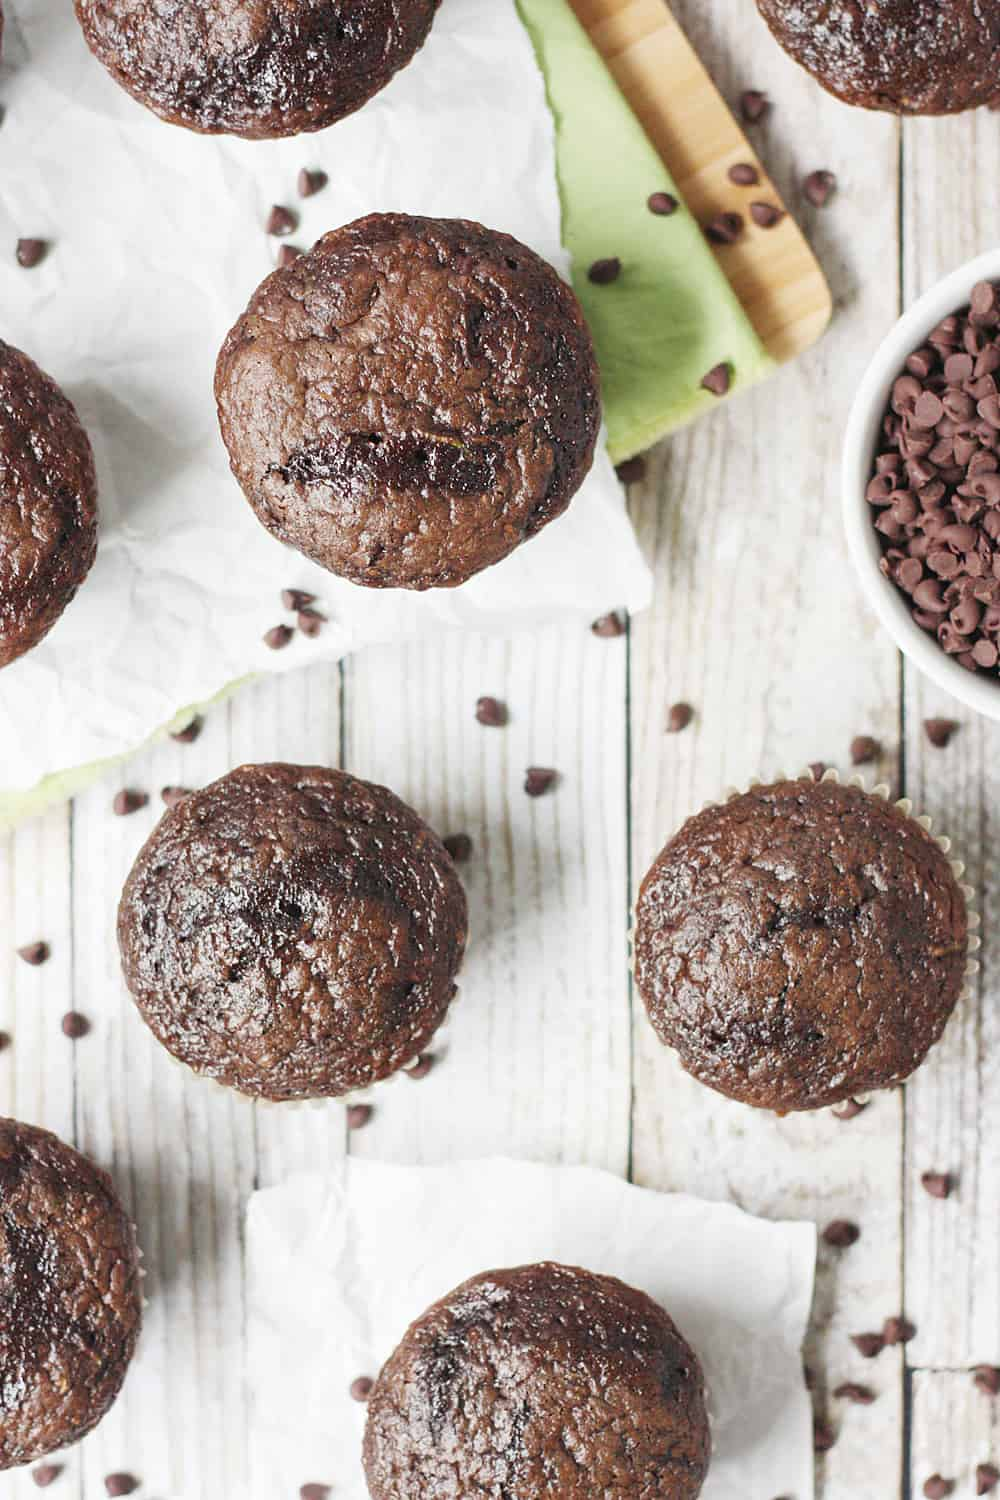 EASY Double Chocolate Zucchini Muffins -- Double chocolate zucchini muffins are easy, moist, and delicious thanks to a decadent chocolate cake mix, mini chocolate chips, and freshly grated zucchini!